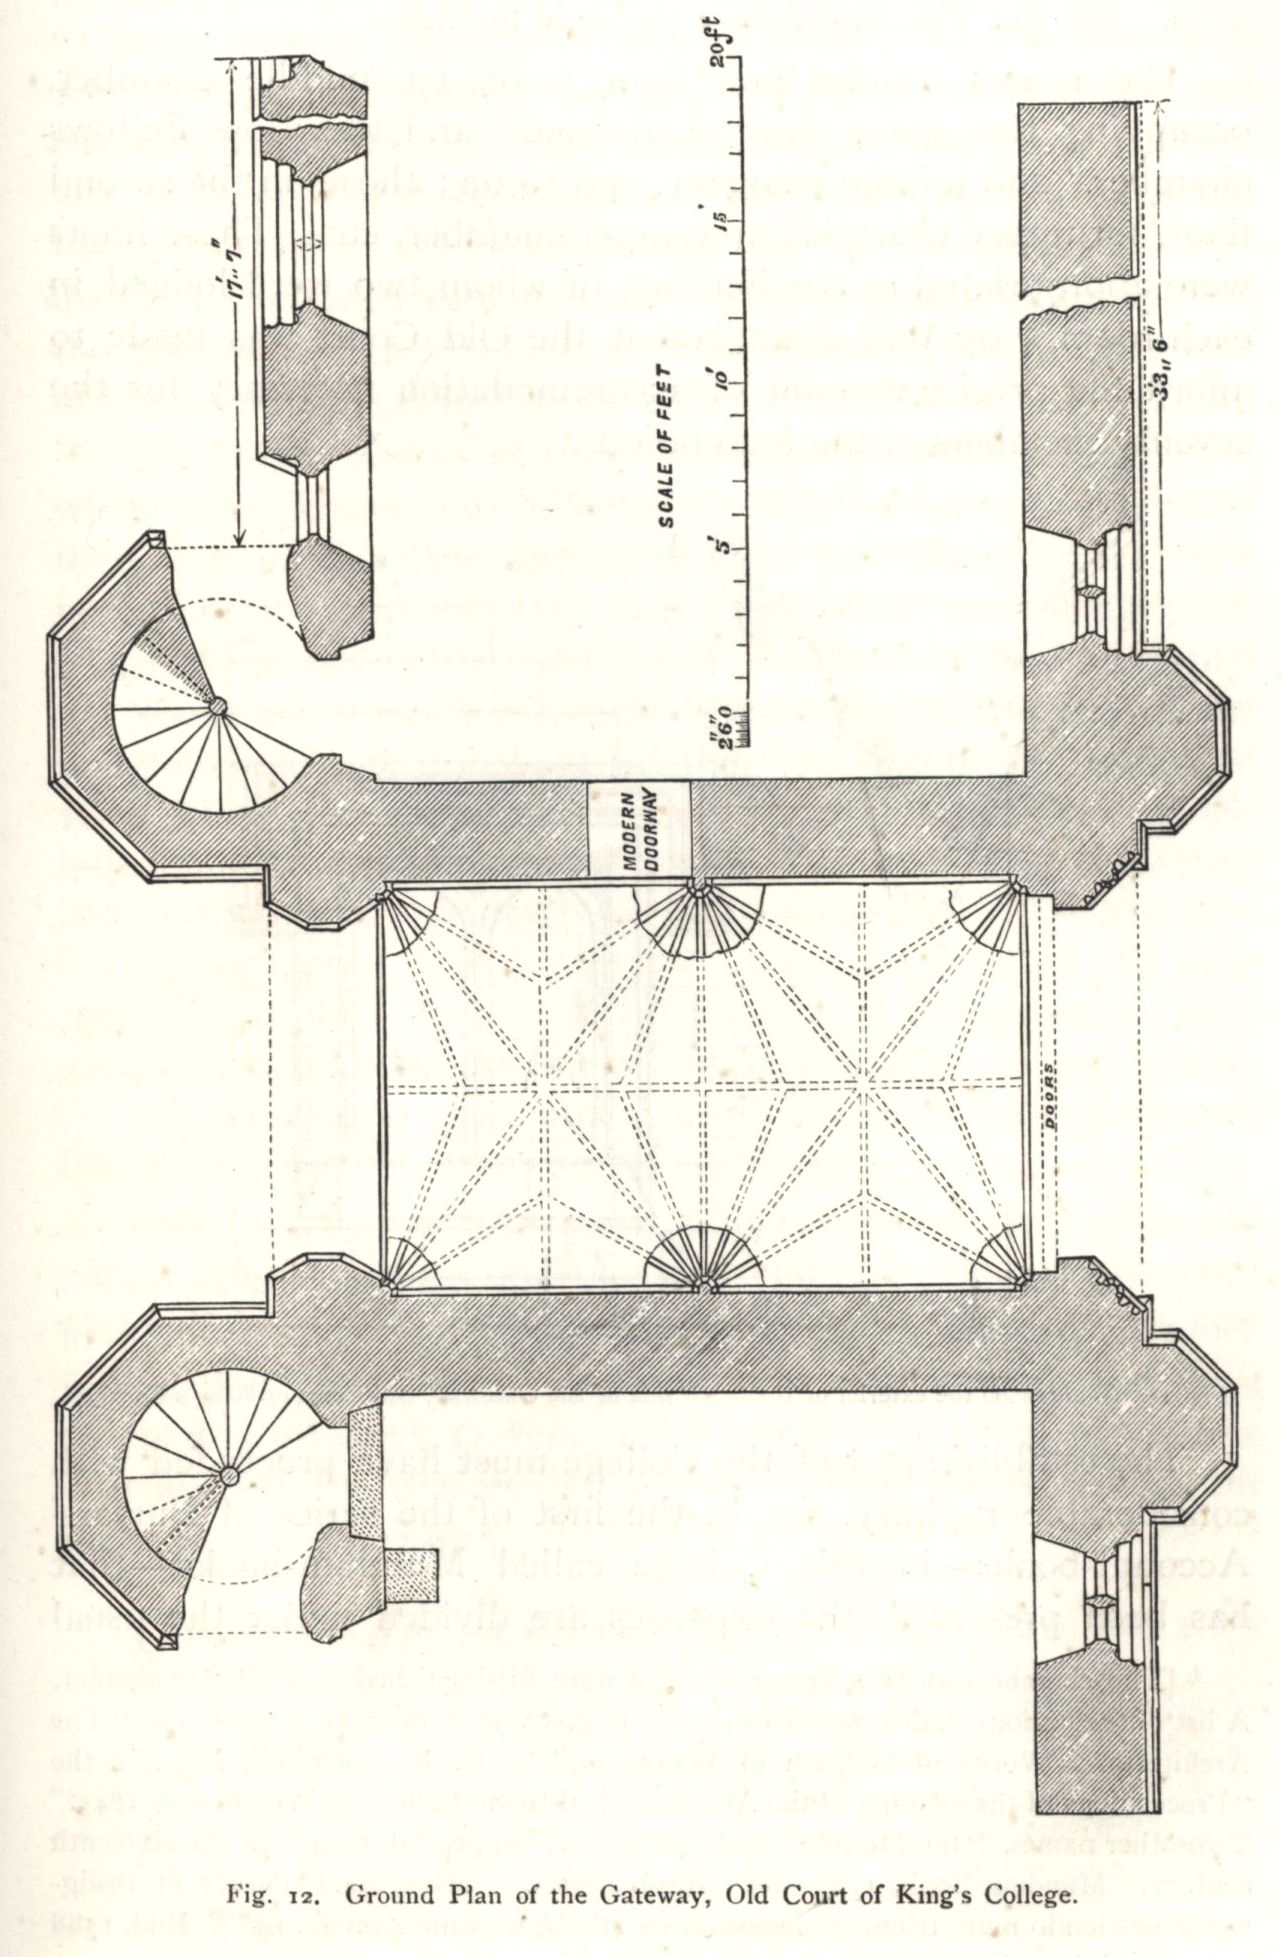 Ground plan of the Gateway, Old Court. [Willis and Clark, vol. 1, p. 331, fig. 12]